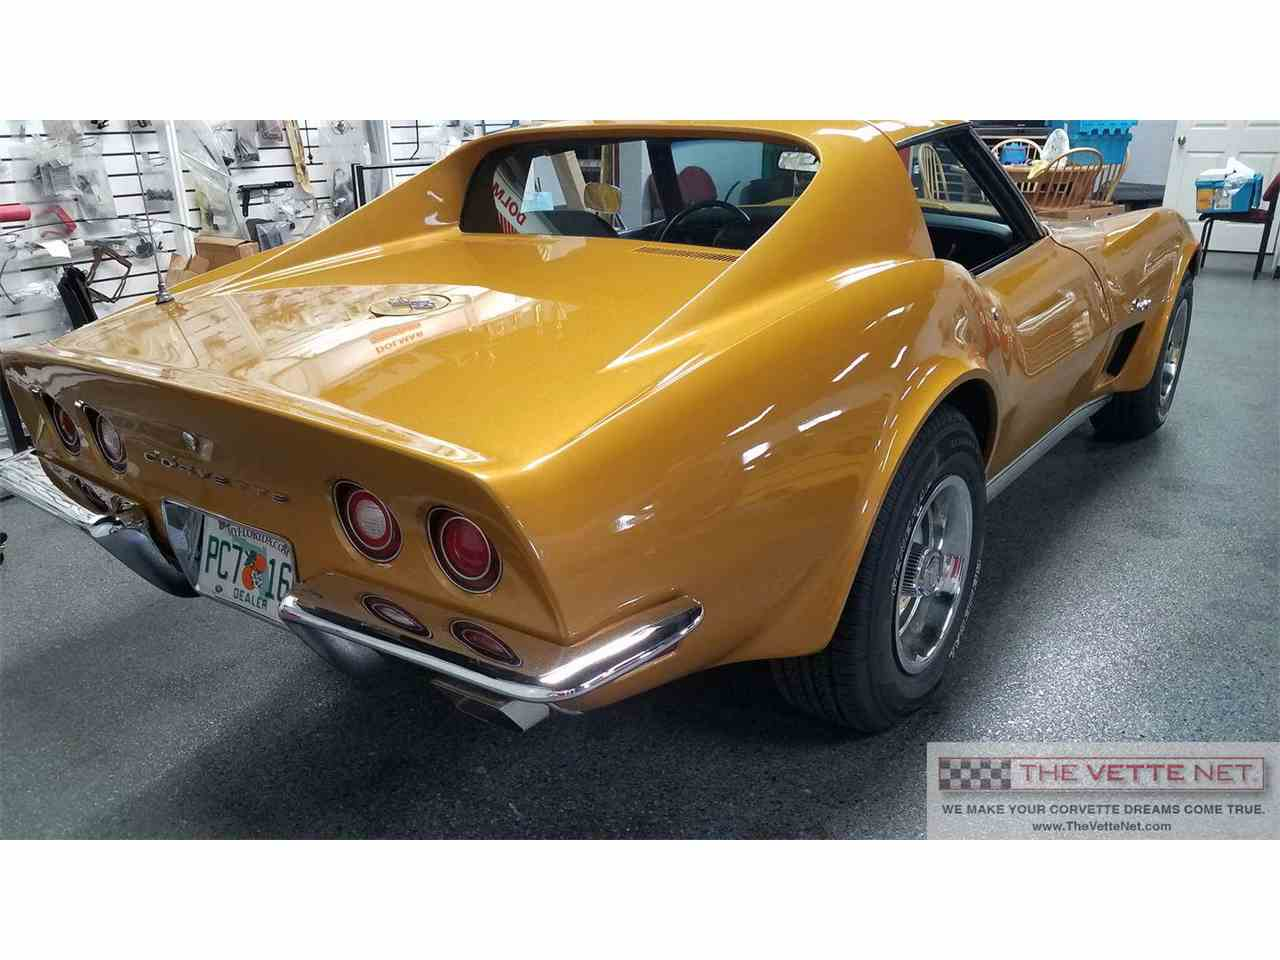 Picture of 1973 chevrolet corvette coupe exterior - Photo 4